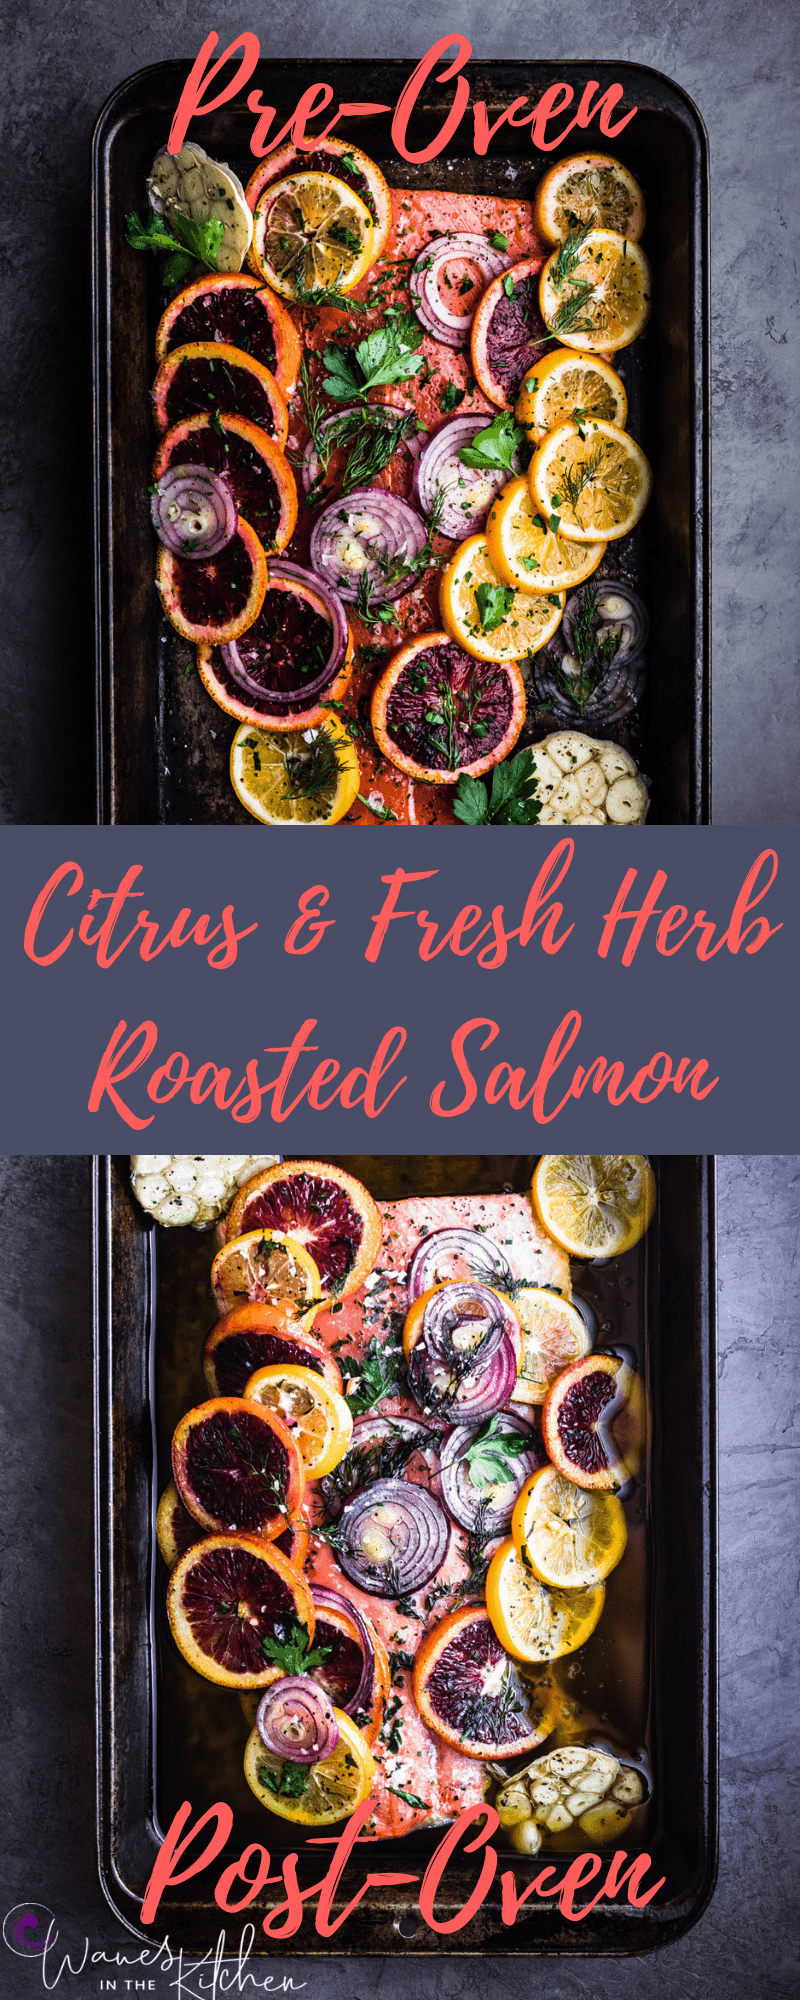 Citrus & Fresh Herb Roasted Salmon, pre-oven image above and post oven image below.